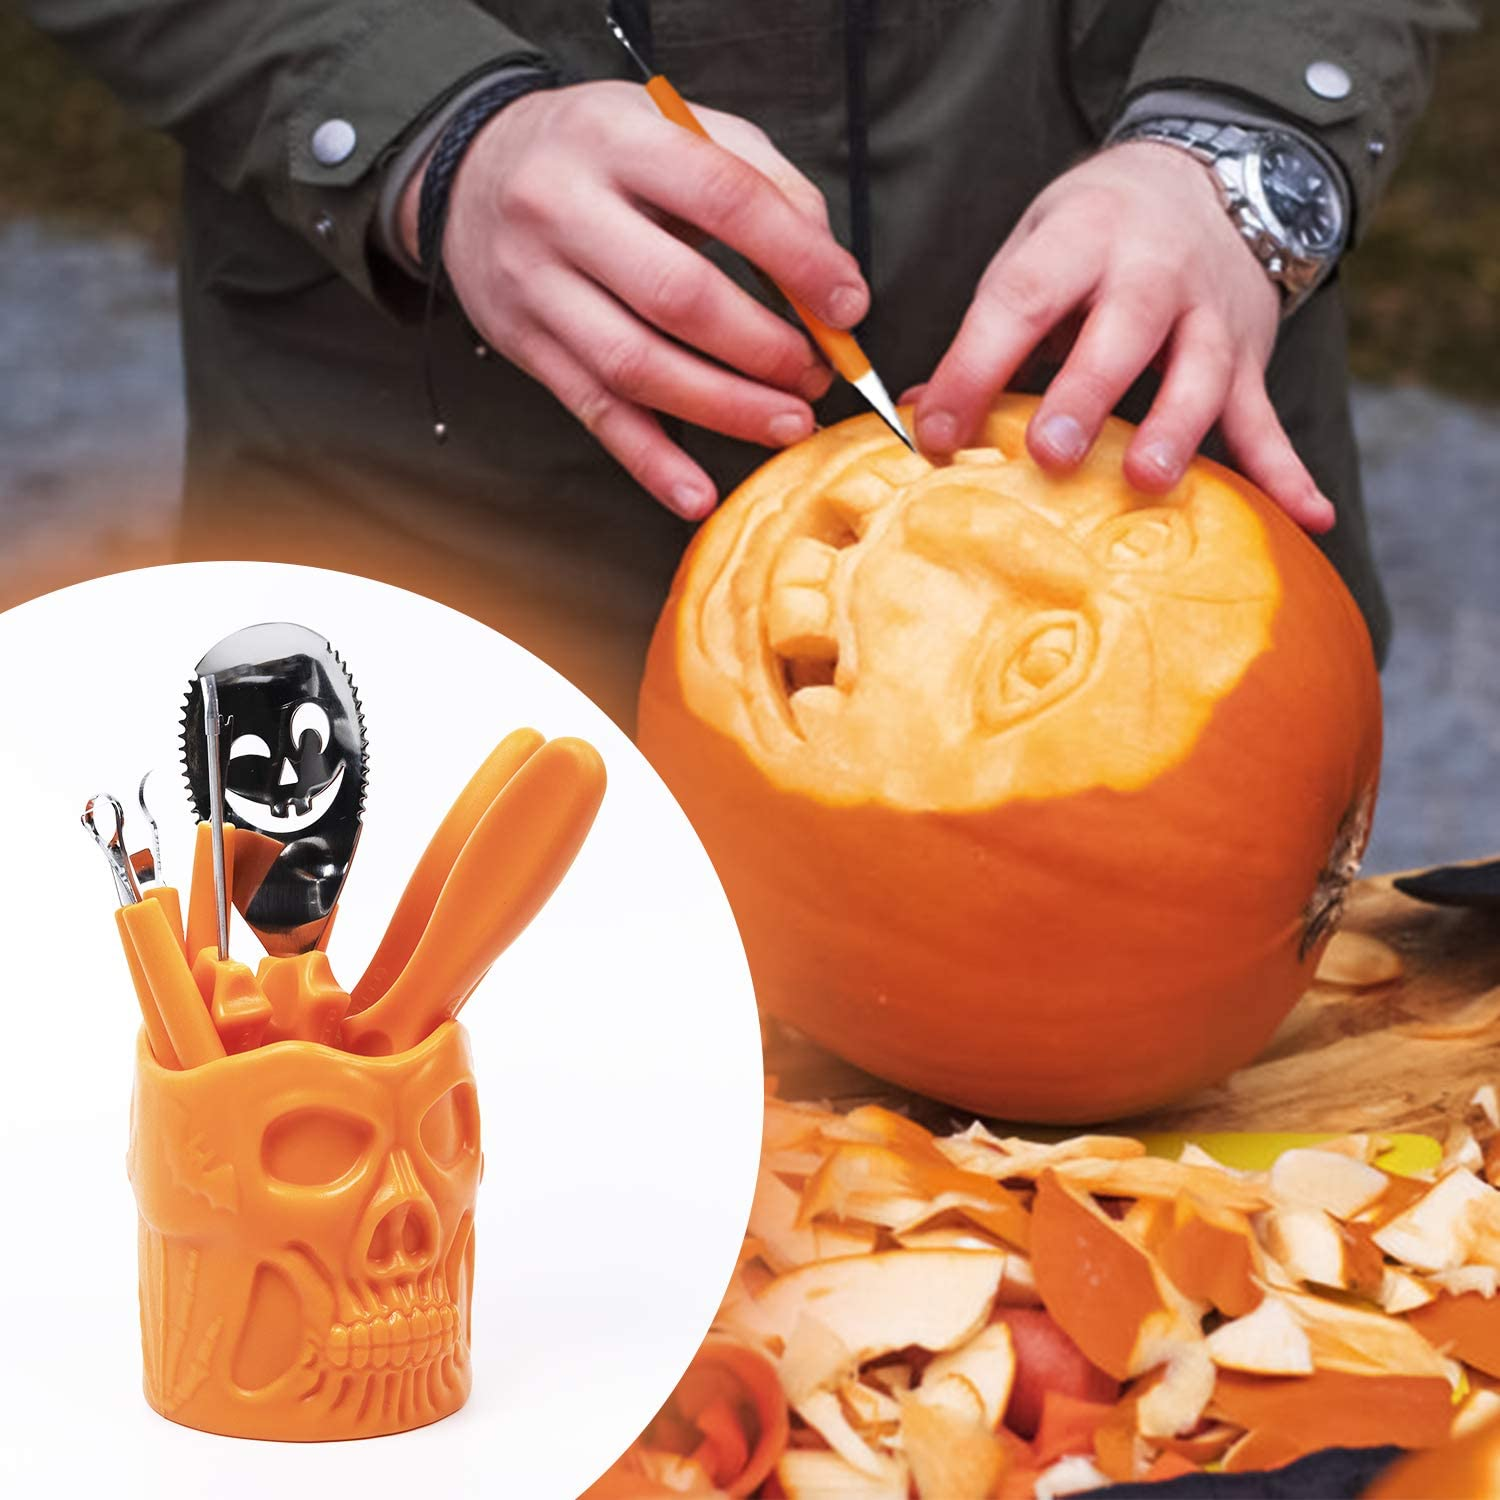 SZILBZ Halloween Pumpkin Carving Kit,Professional and Heavy Duty Stainless Steel Tools,Pumpkin Carving Set with Carrying Case